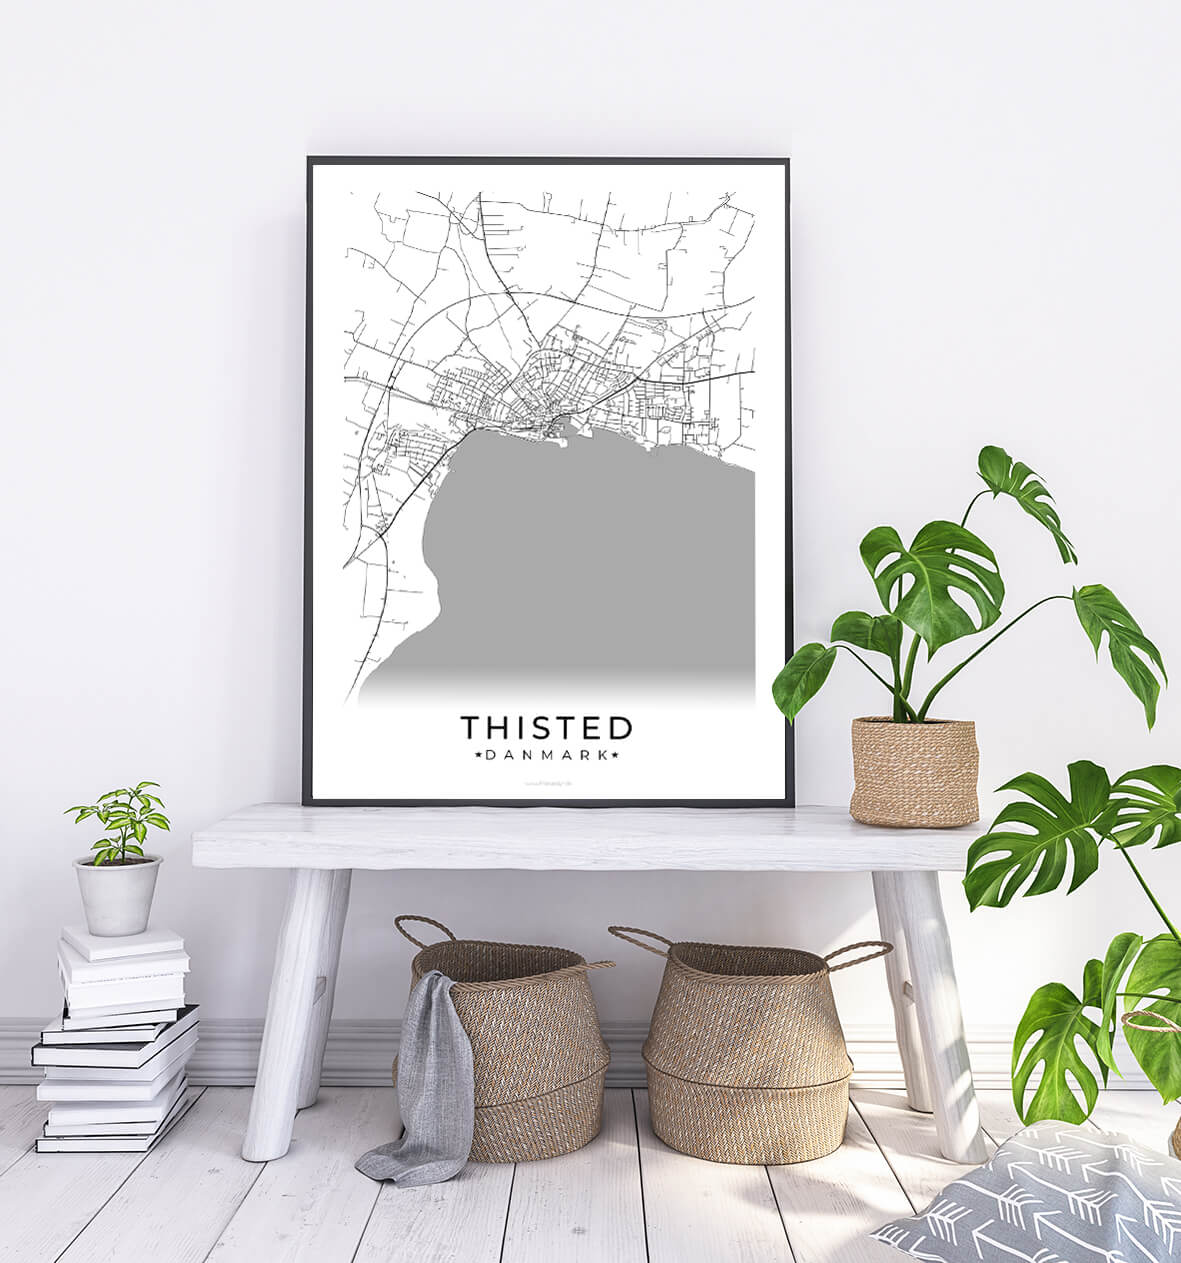 Thisted-hvid-byplakat-1